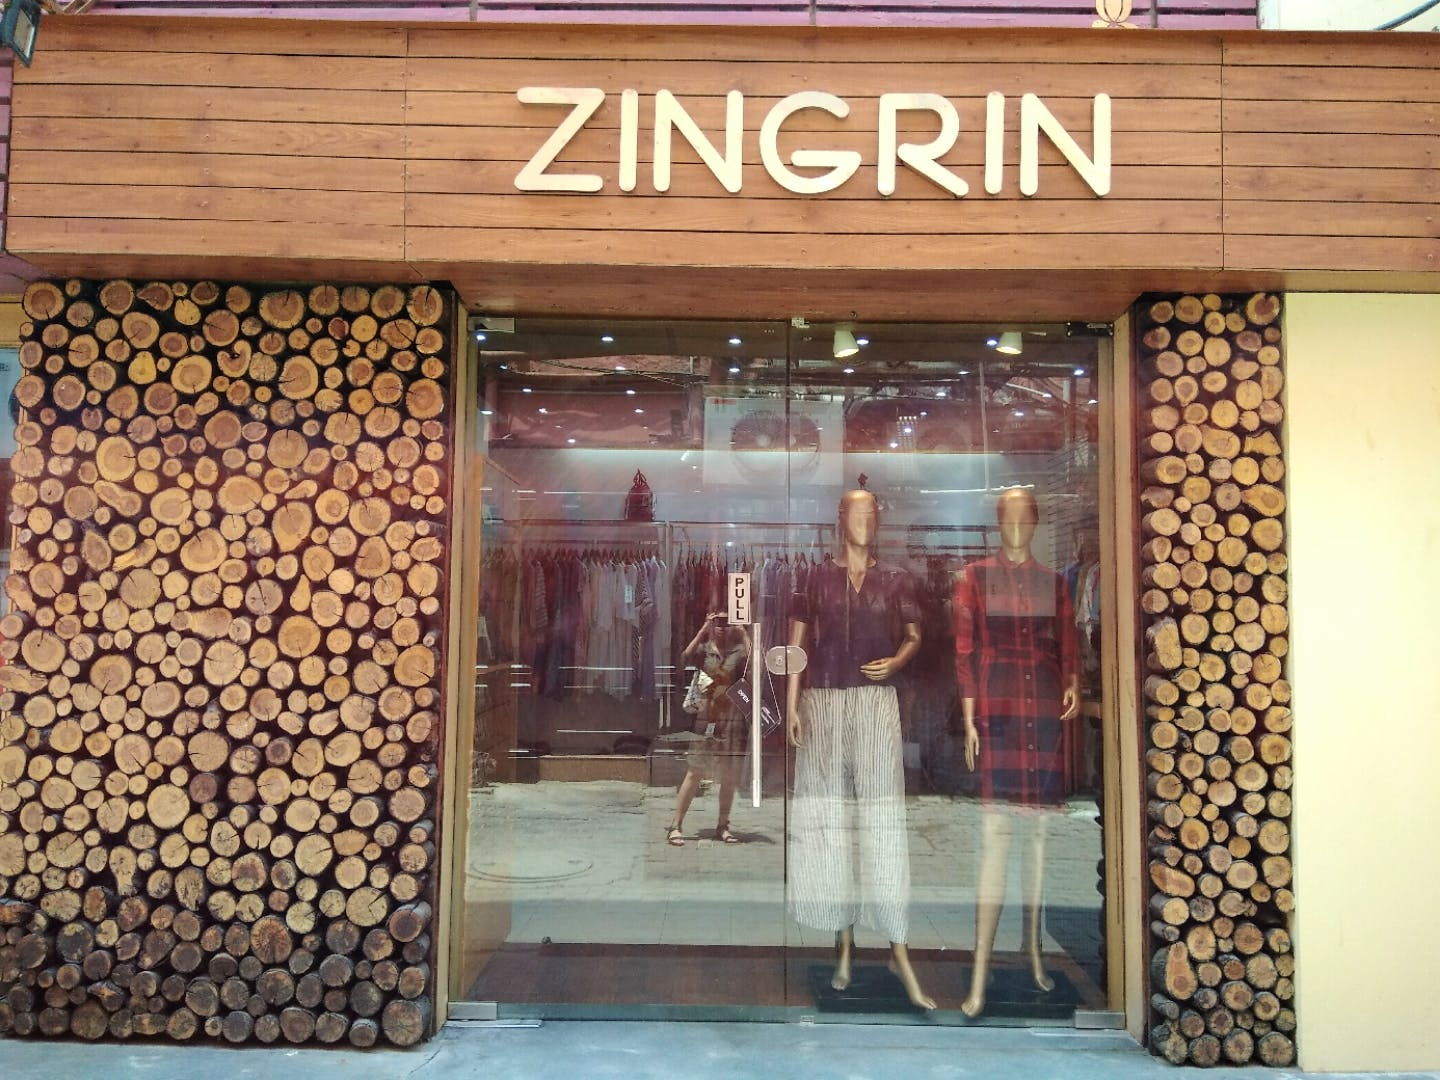 Display window,Building,Retail,Boutique,Door,Outlet store,Facade,Display case,Bakery,Window